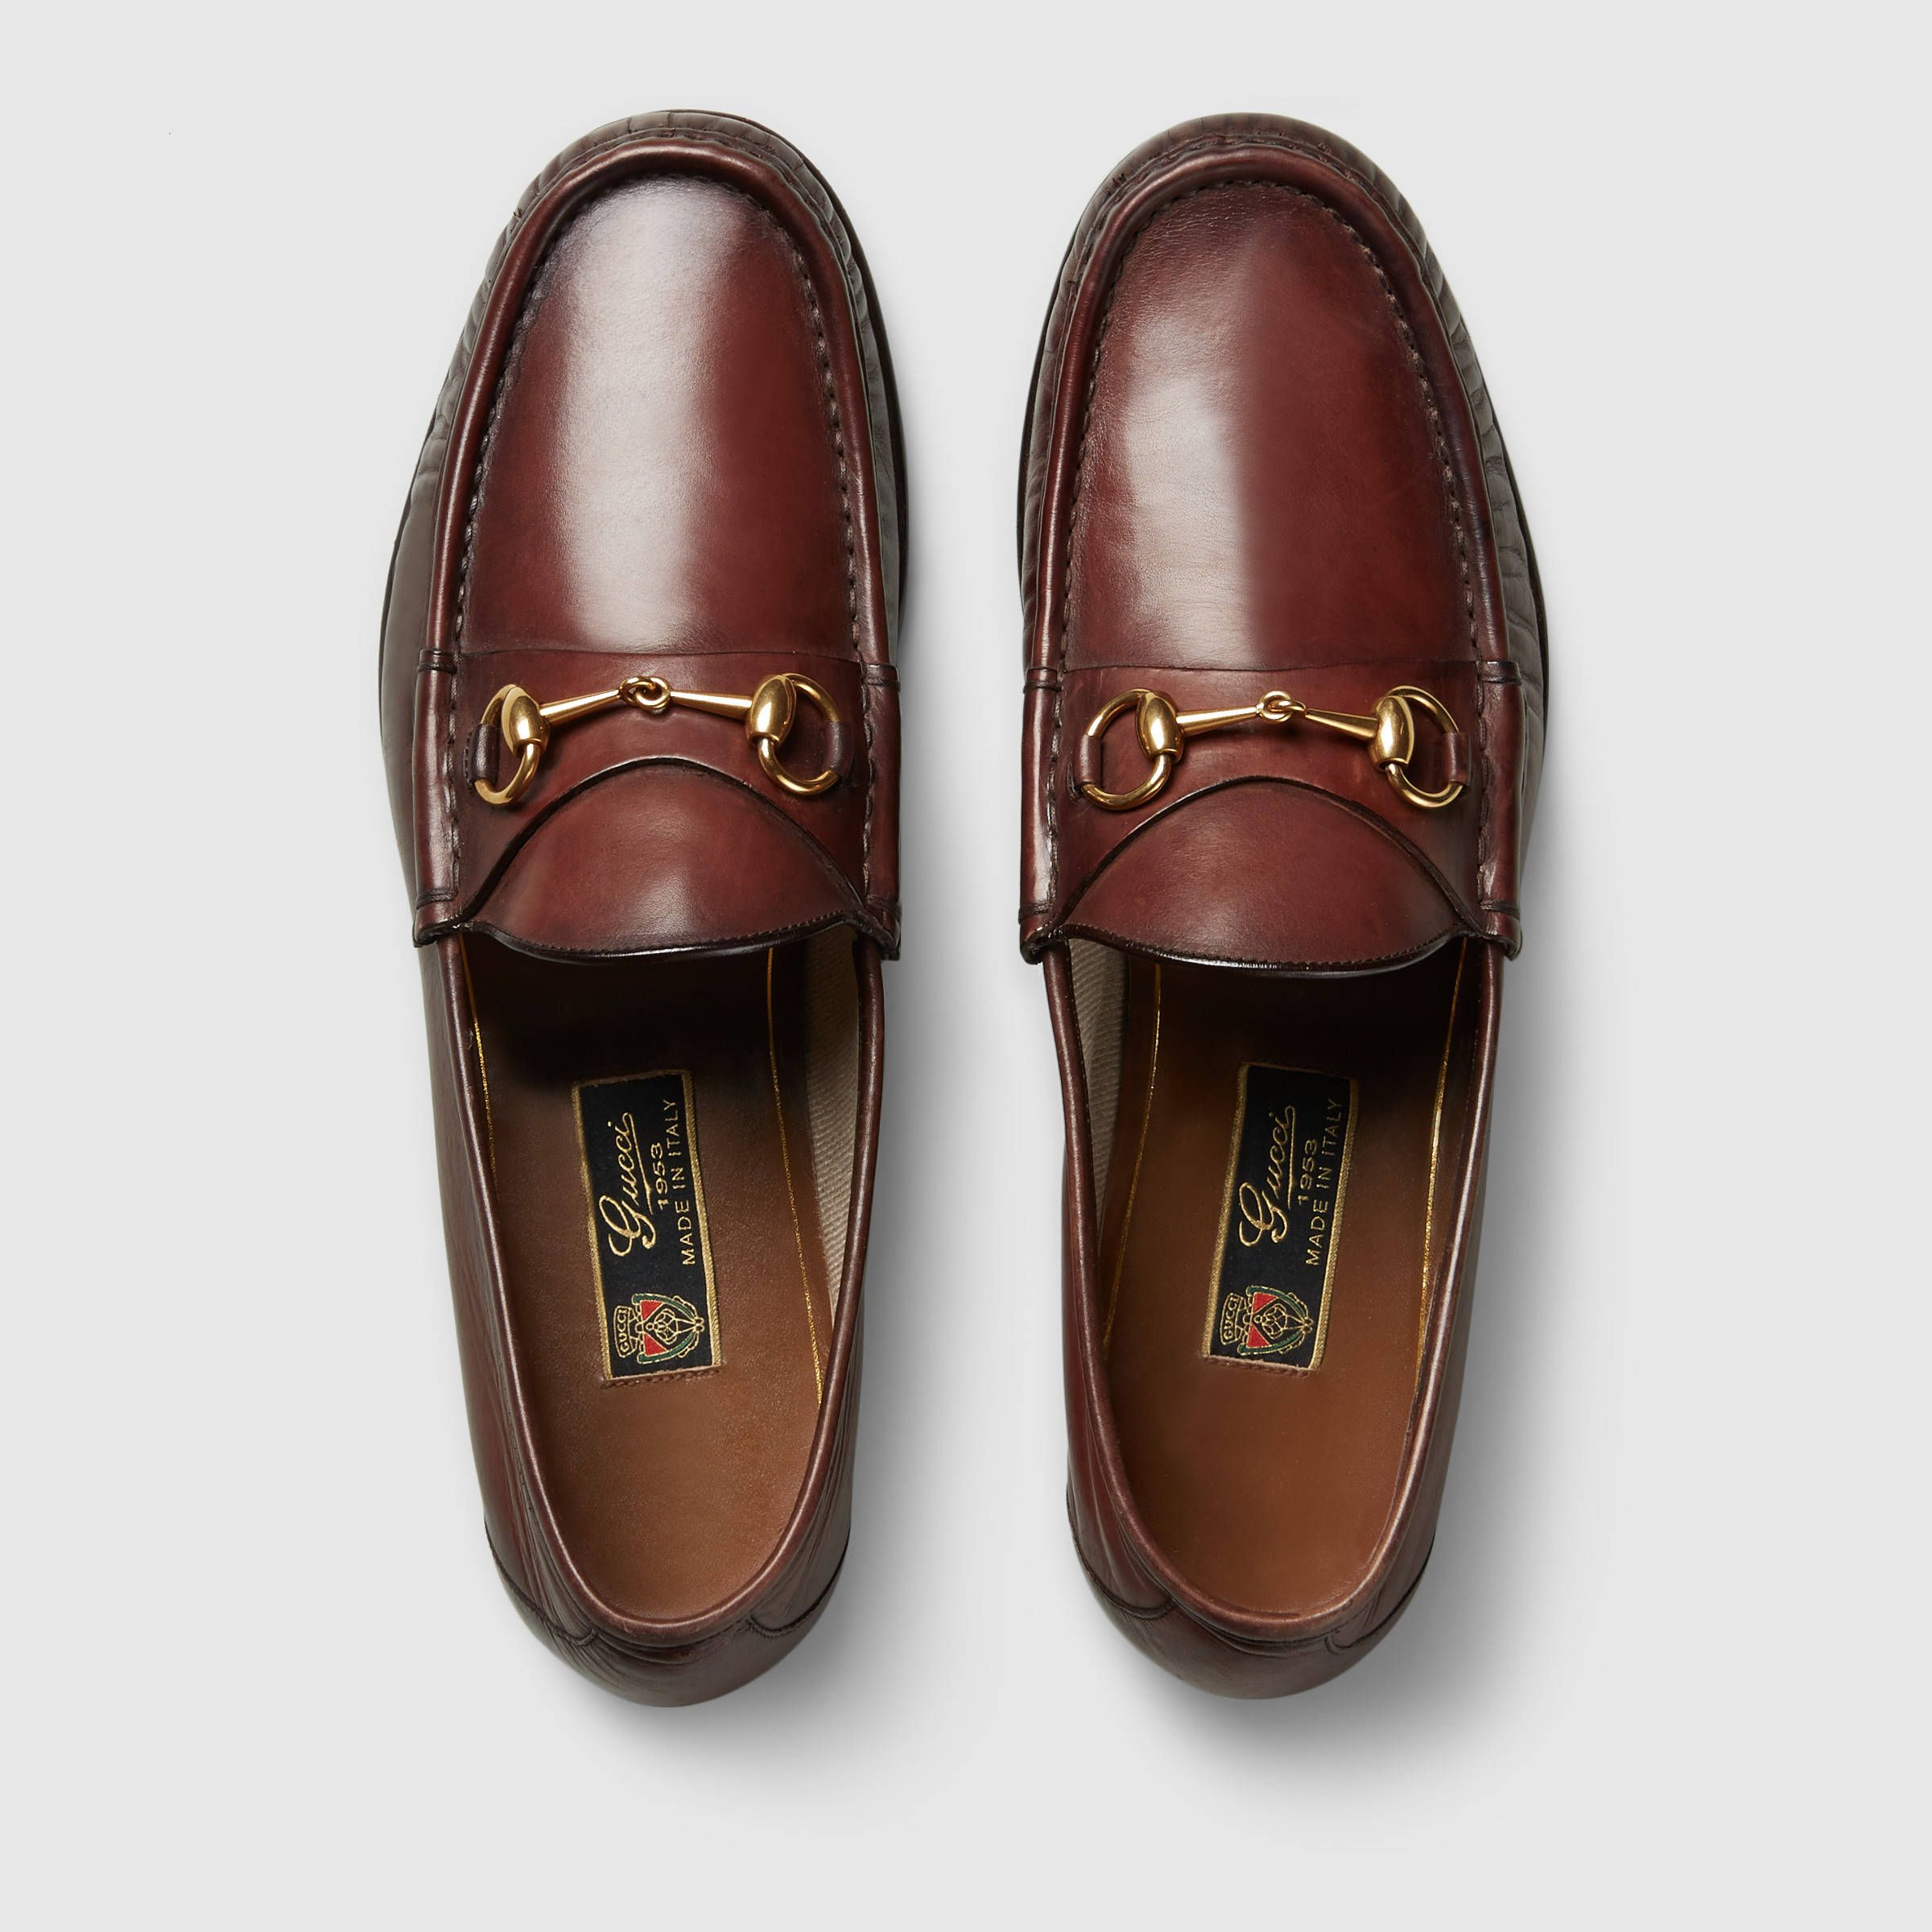 4c89f4da7 Gucci 1953 Horsebit leather loafer | My Loafer Obsessions | Shoes ...